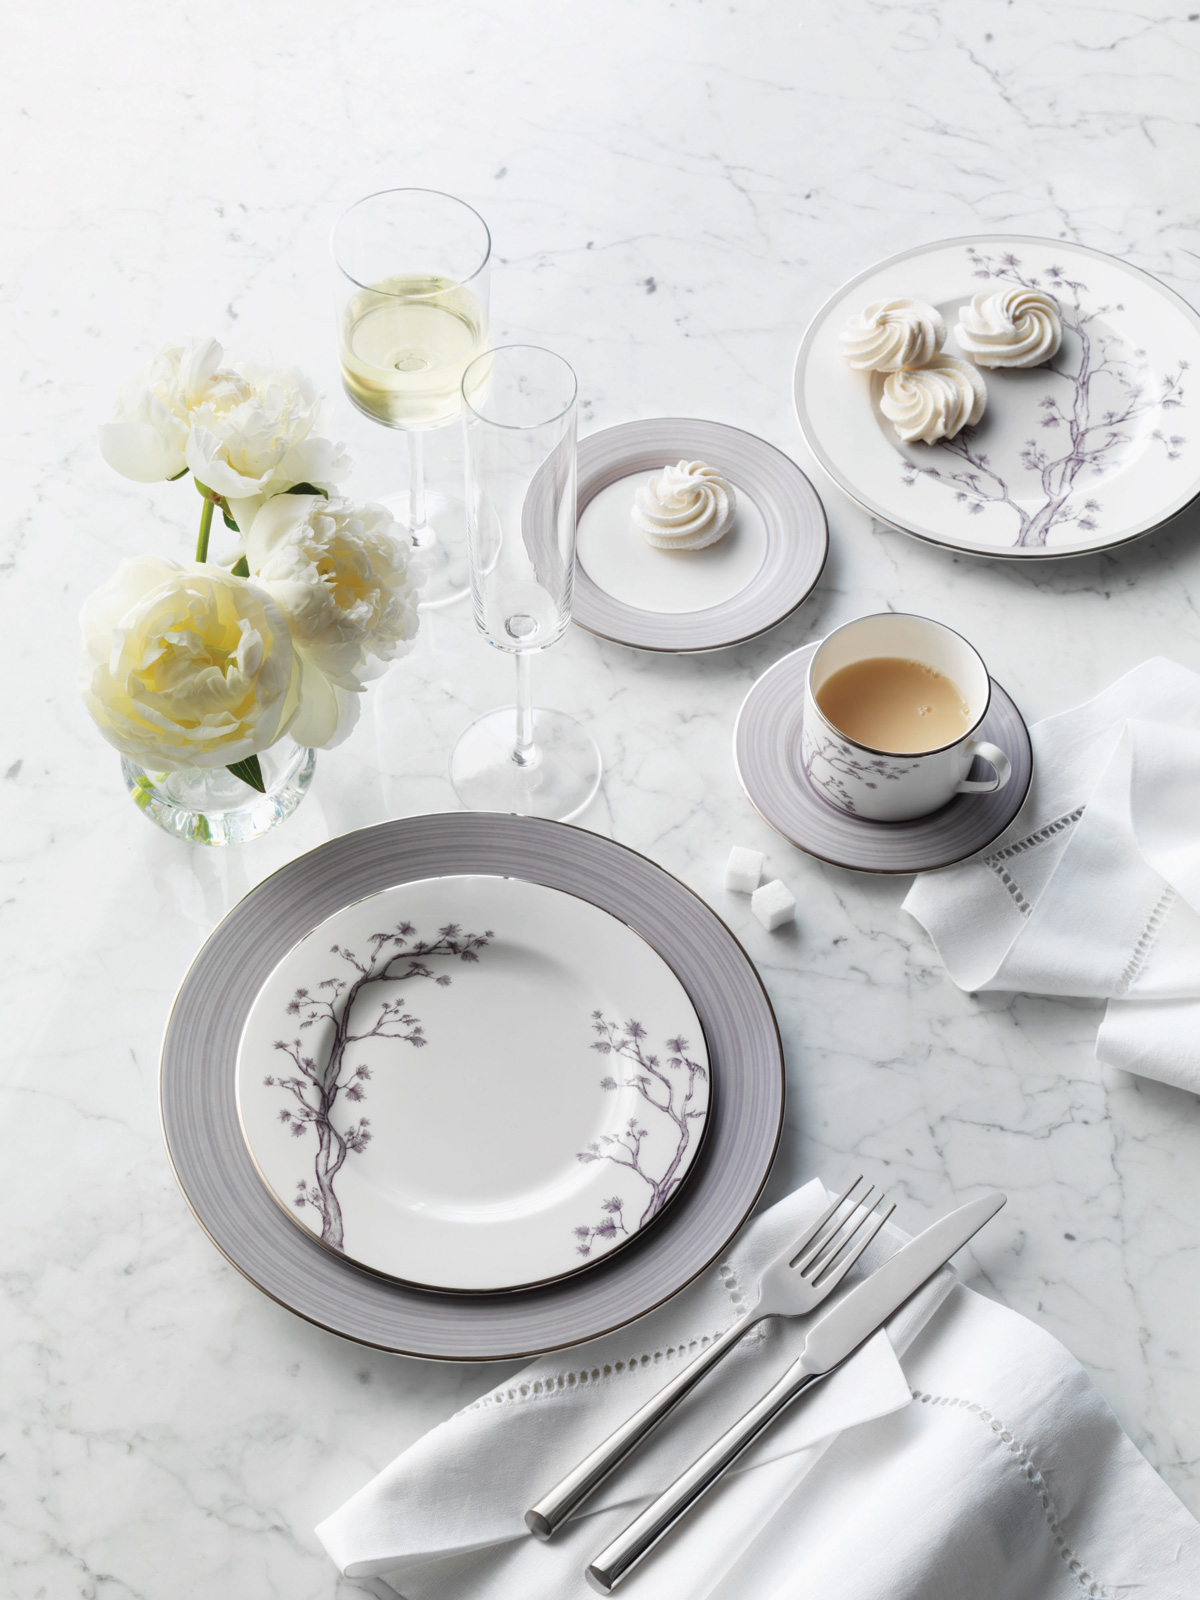 Set the table with Willow China by Brian Gluckstein